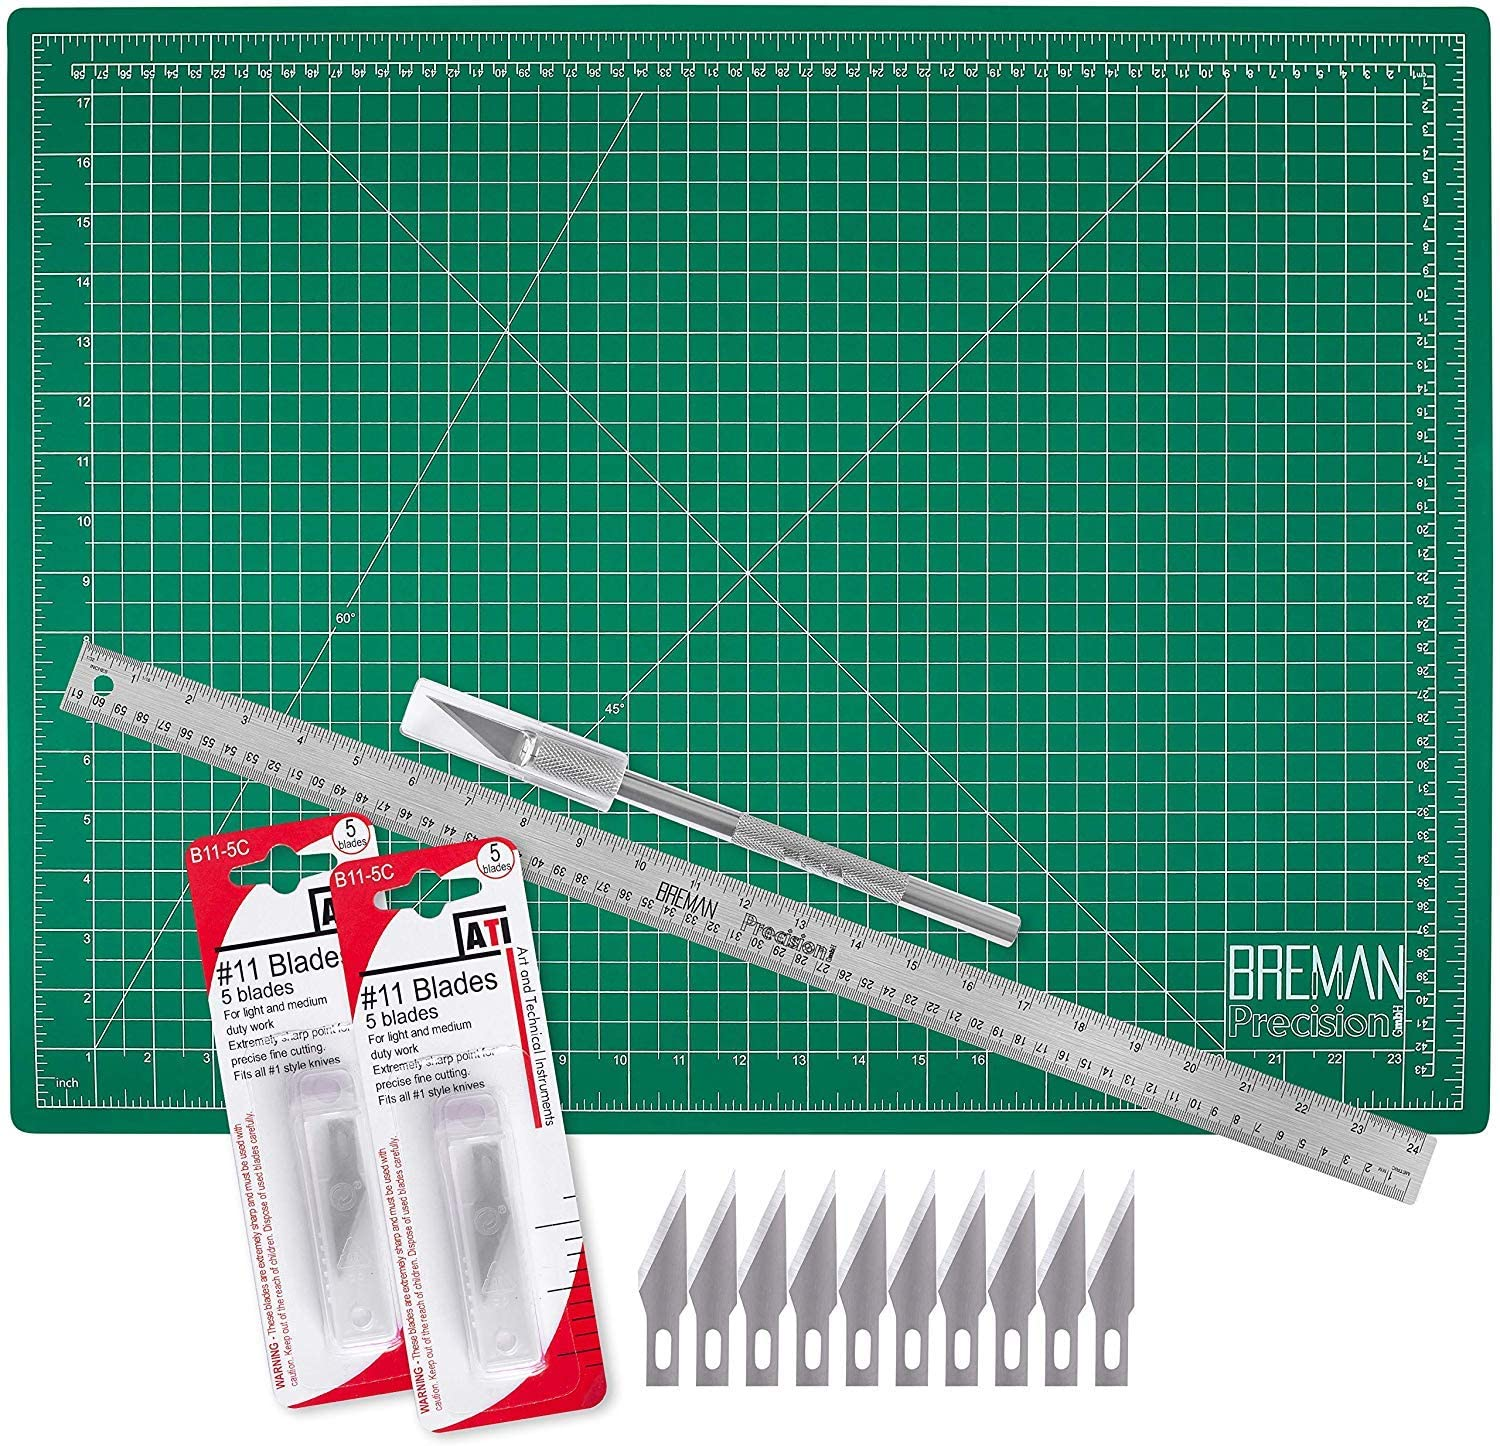 WA Portman Cutting Mat Craft Knife Precision Ruler Set - 18x24 Inch Self Healing Mat - Hobby Knife - 10 Replacement Blades Compatible with Most X acto Knives - 24 Inch Premium Steel Ruler